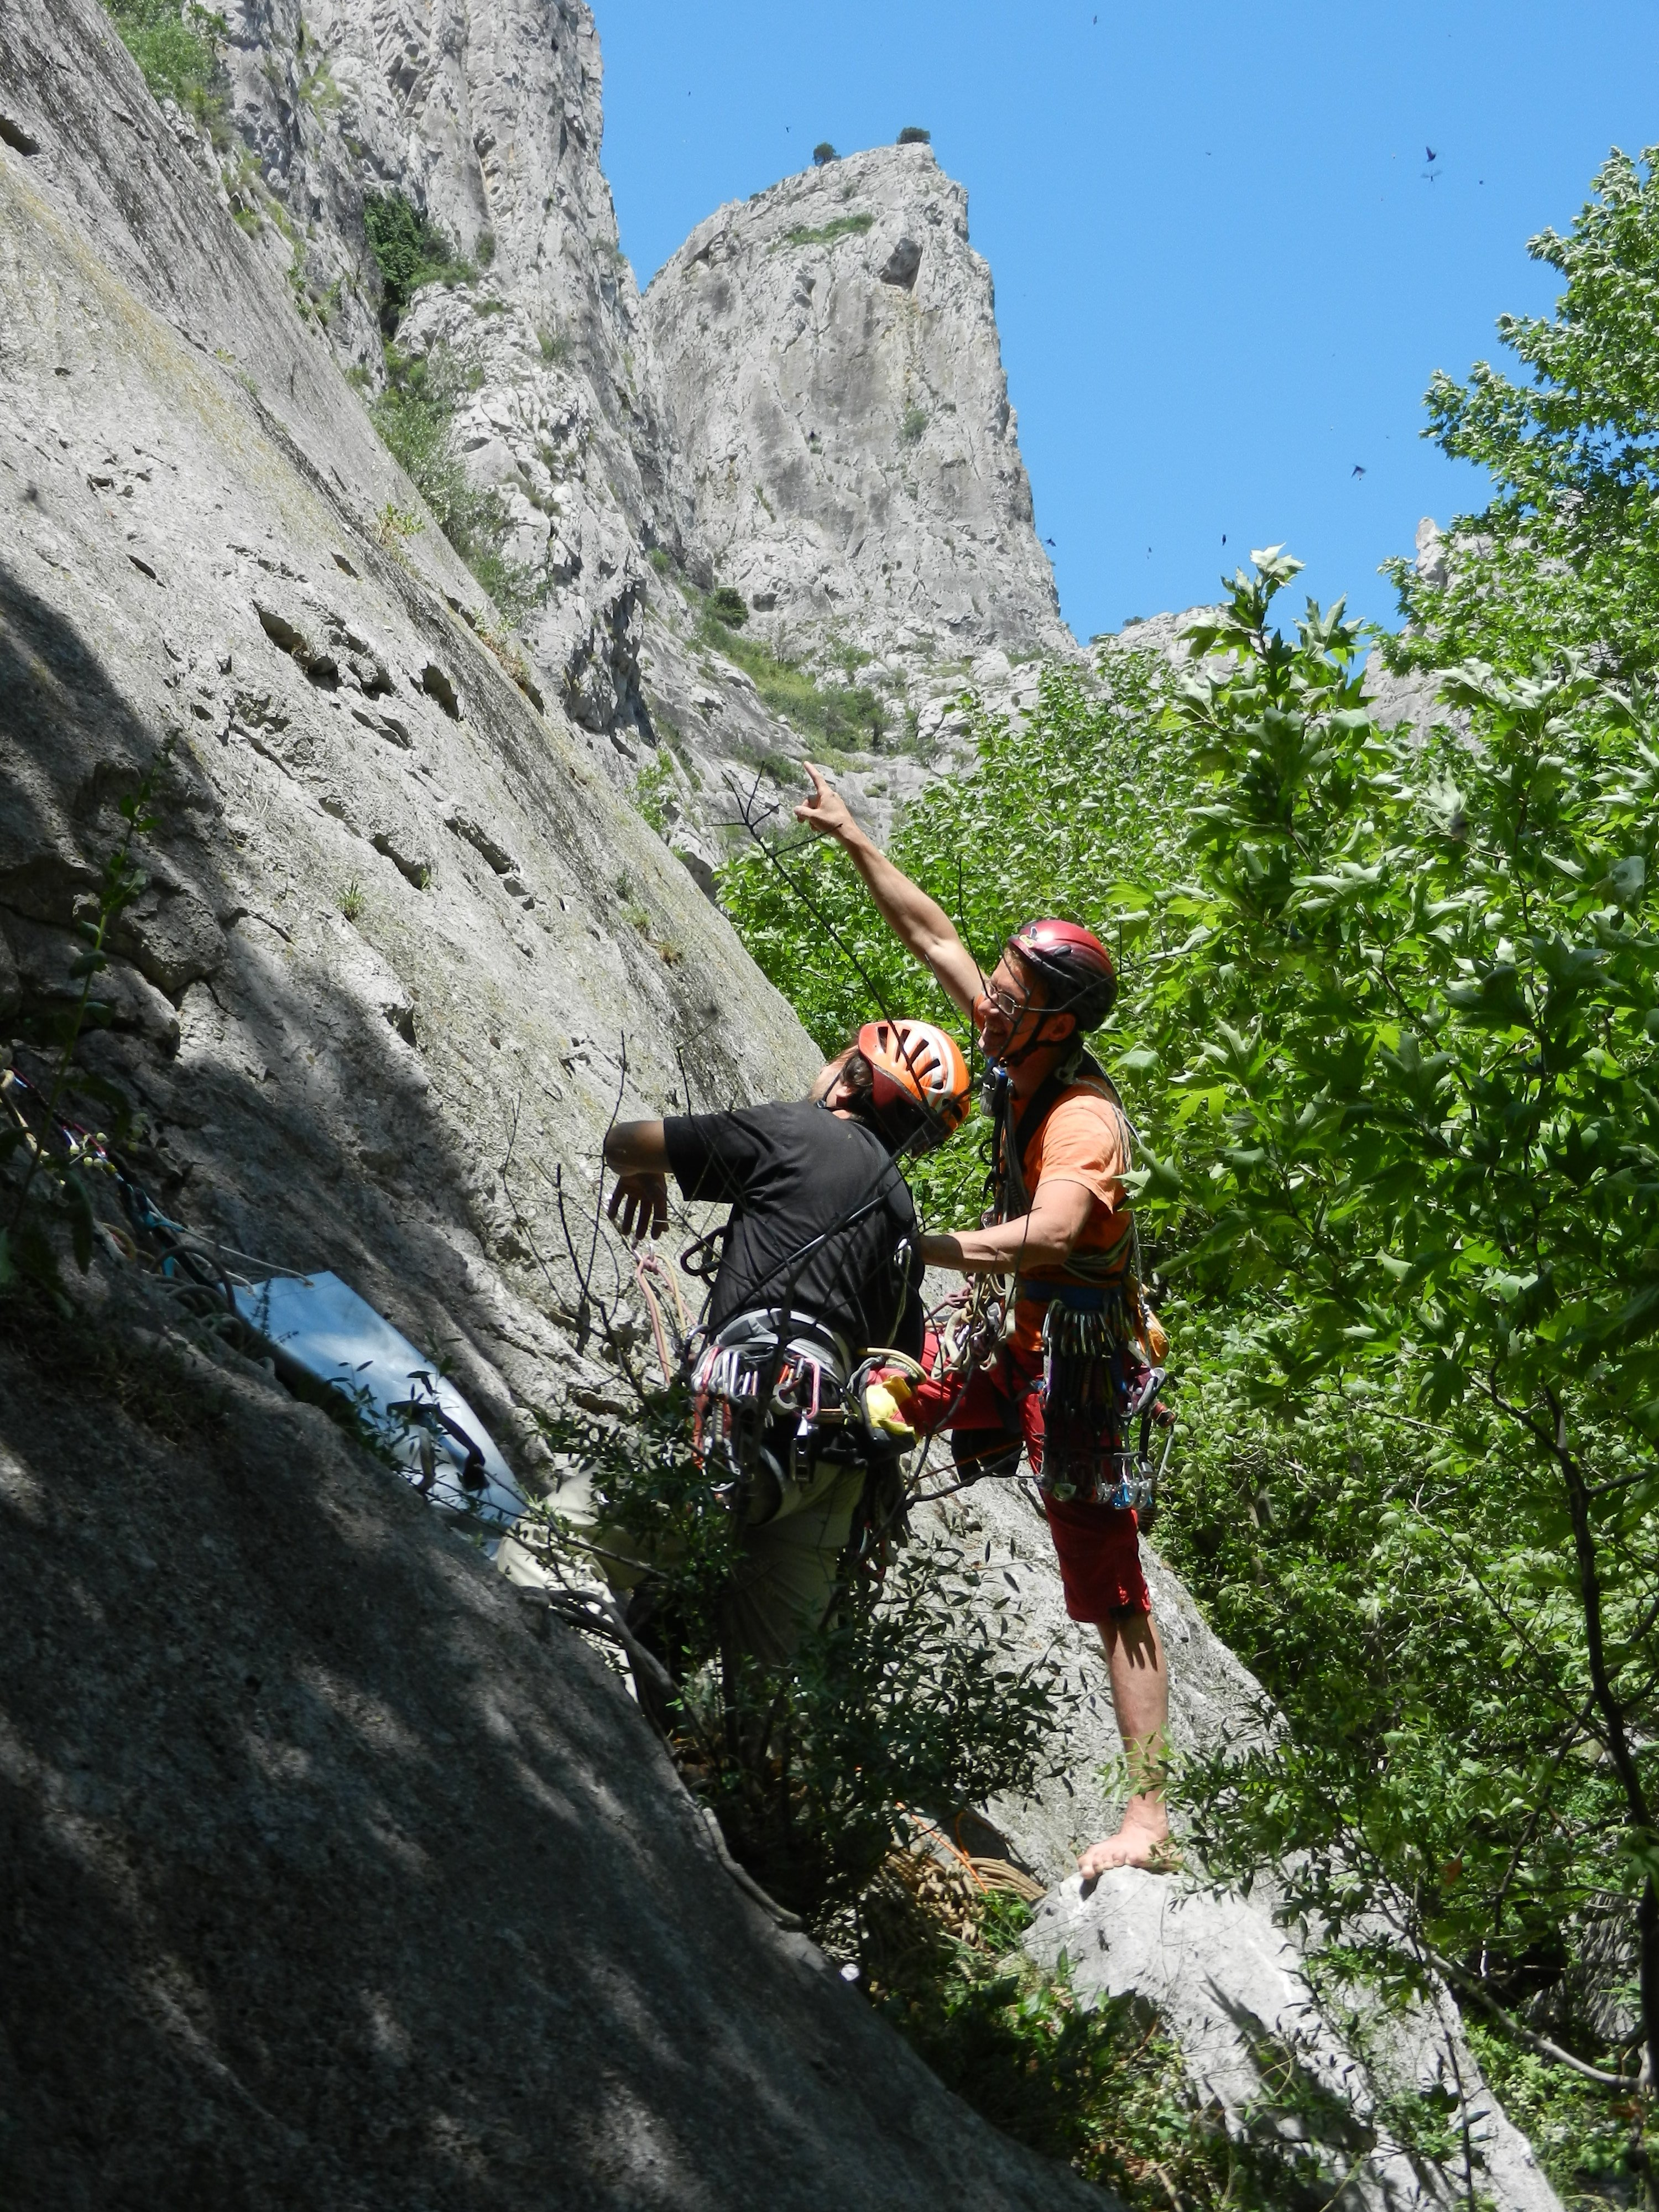 Team is preparing to star trad climb